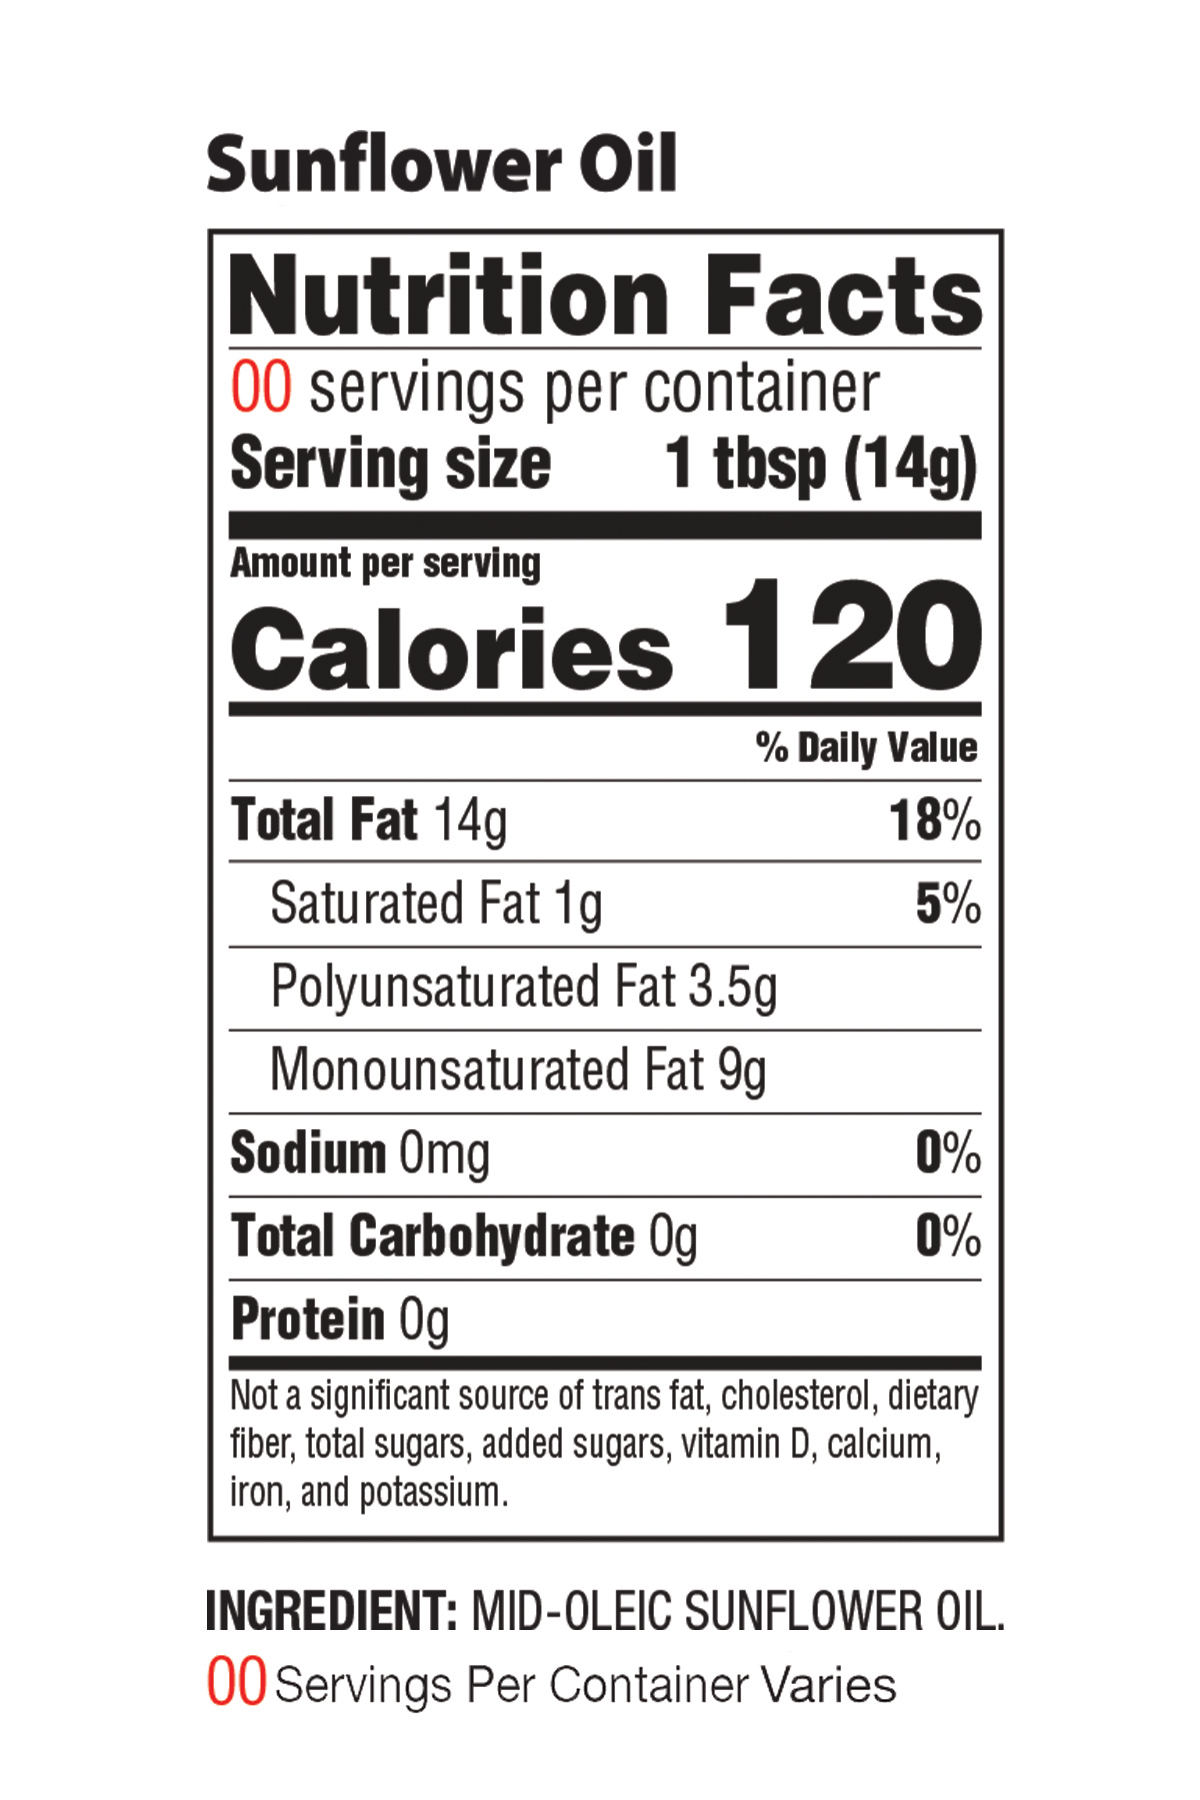 Sunflower Nutrition Facts